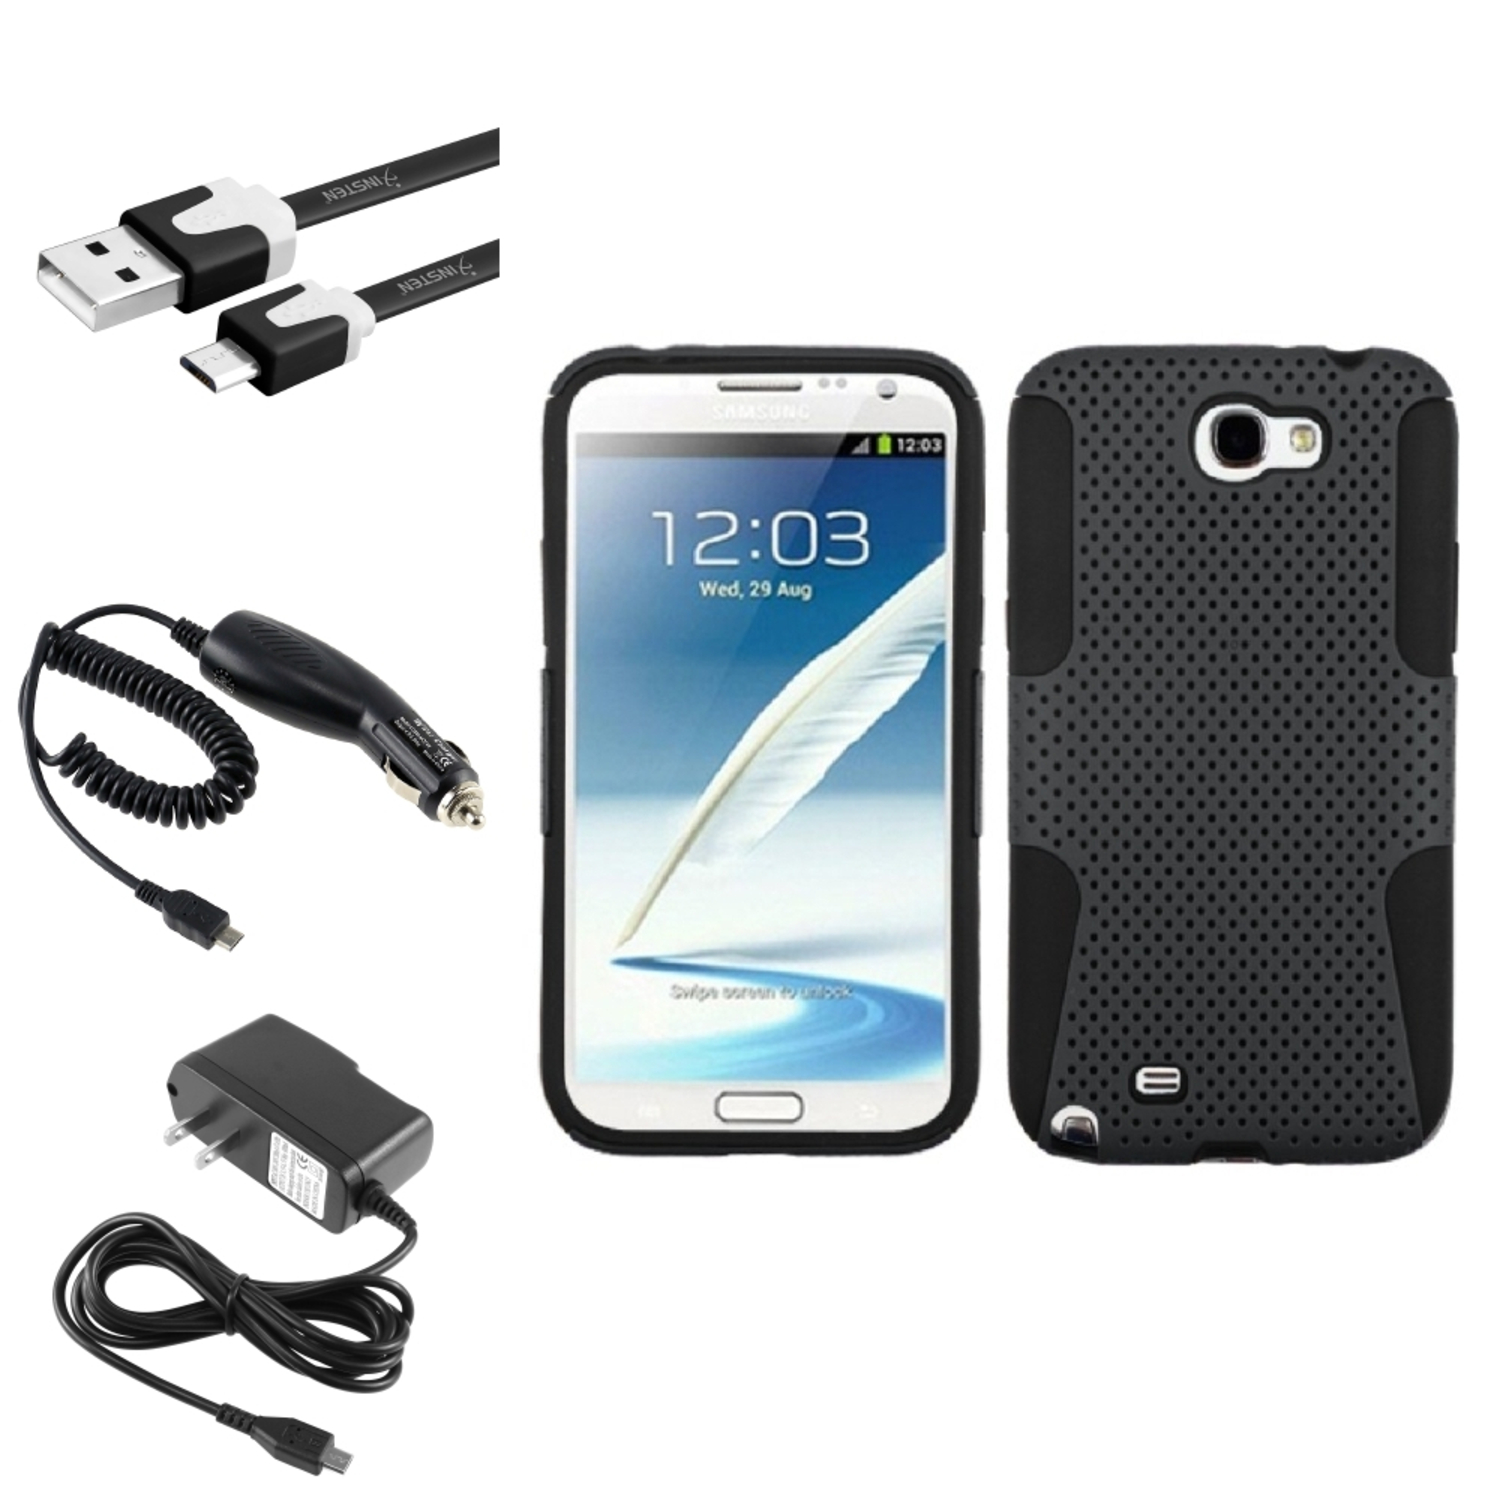 Insten Black/Grey Hybrid Case+2x Charger+3x USB Cable For Samsung Galaxy Note 2 II